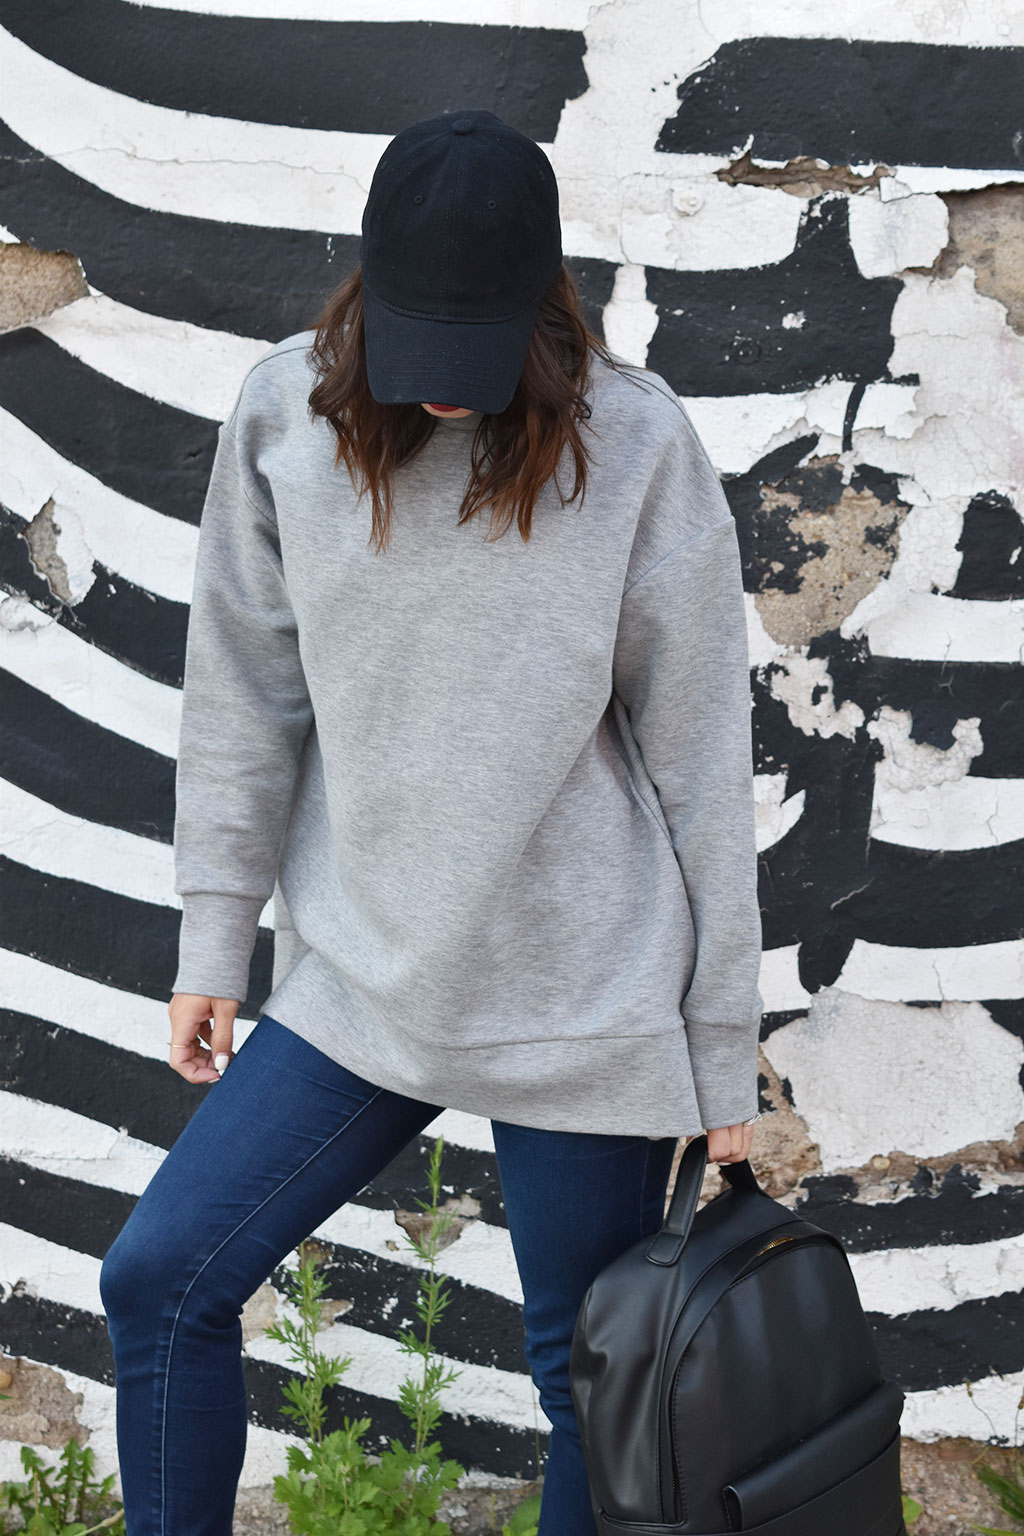 Oversized Proportions | Cos Gray Oversized Sweatshirt, Michael Michael Kors Skinny Jeans, Target Black Hat, Zara Black Leather Backpack, Nike Air Force Shoes